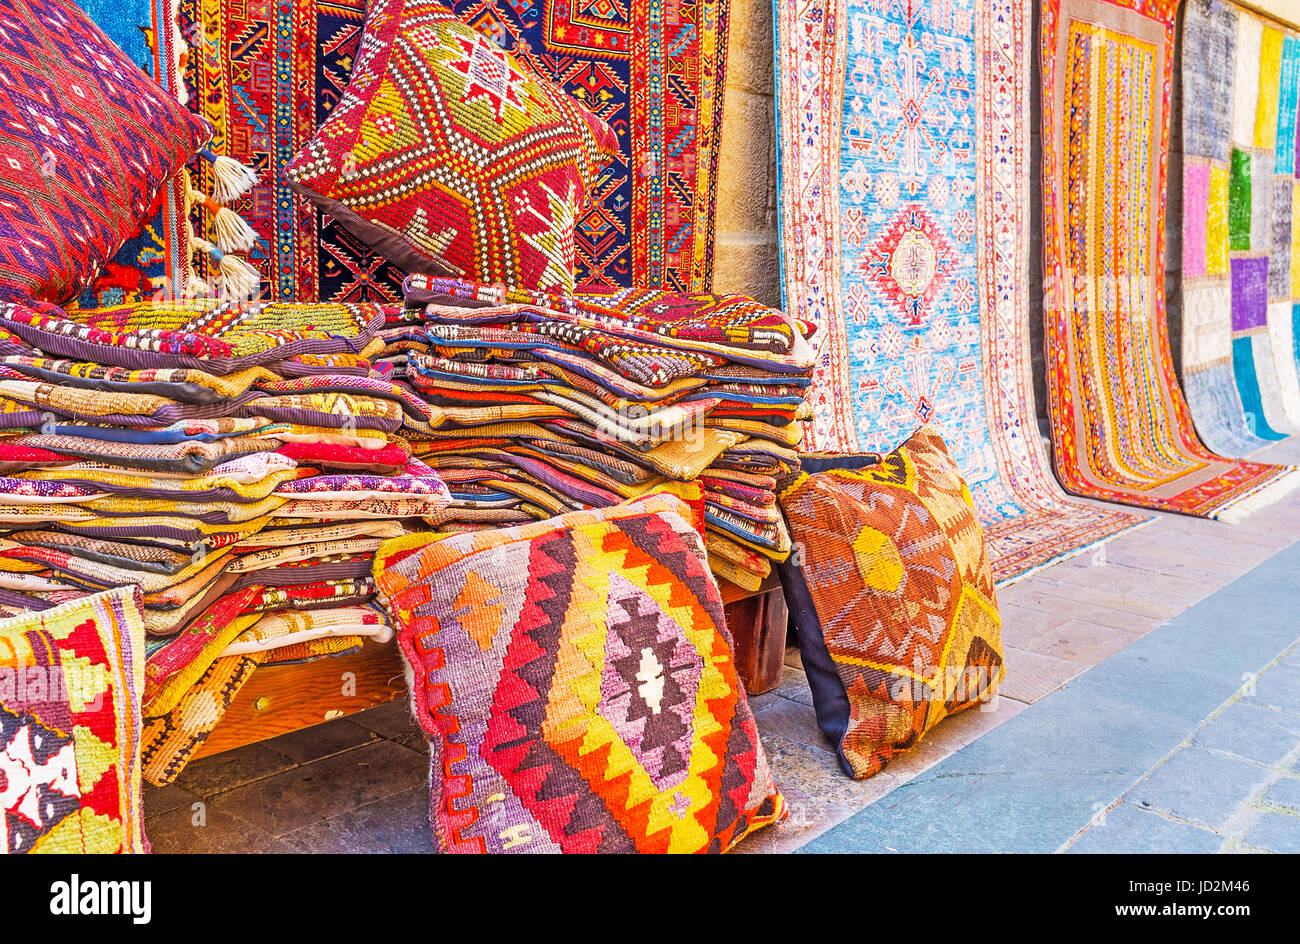 The kilim rug wool pillowcases, covered with traditional geometric patterns, are perfect details for interior design, - Stock Image